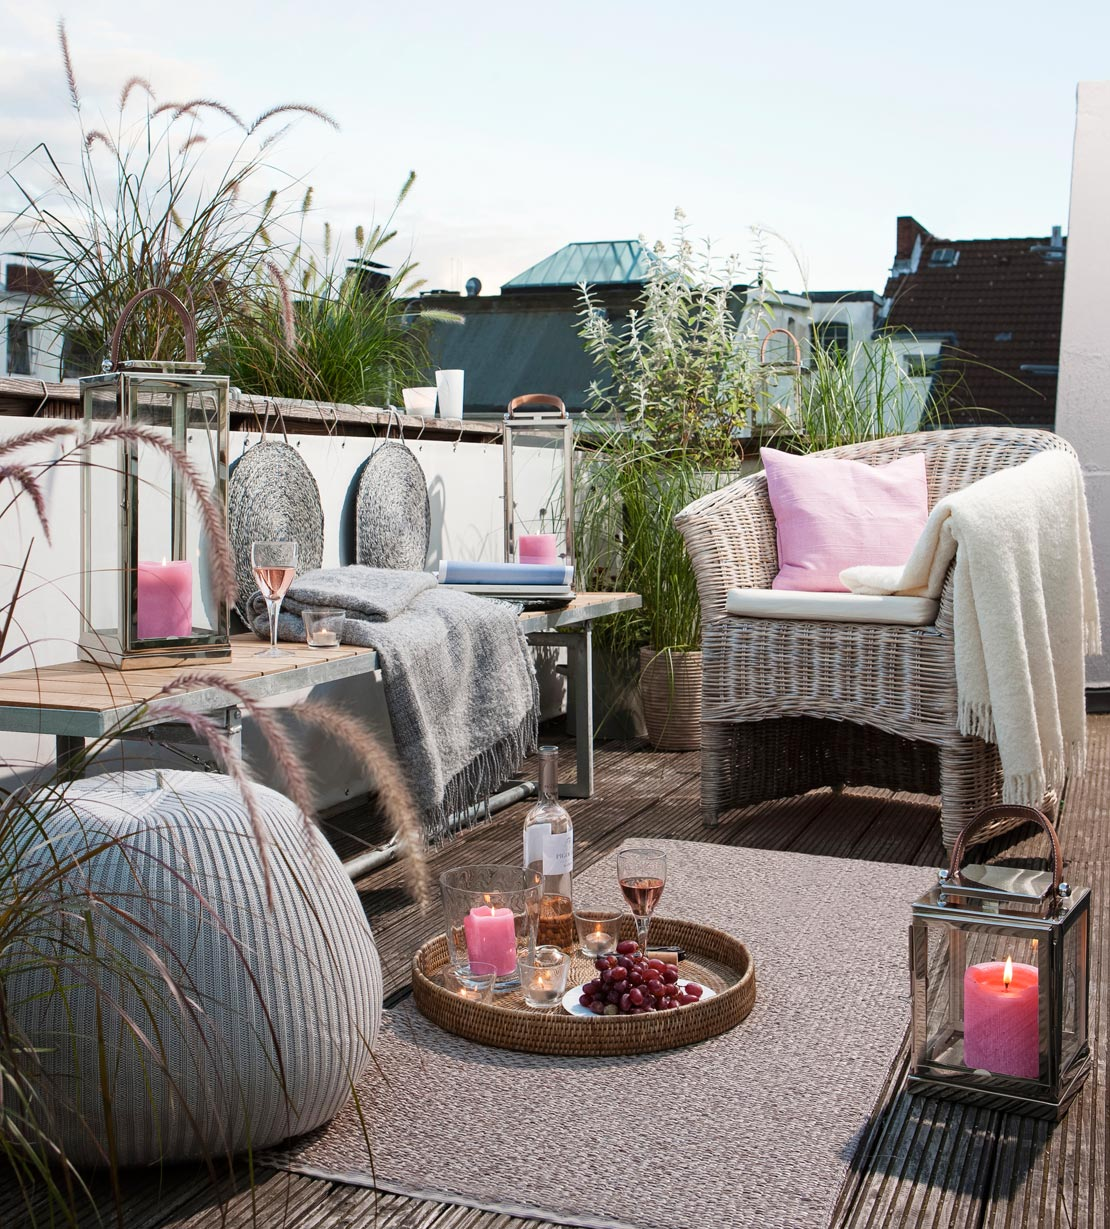 westwing-cocooning-terrasse-mit-lampen